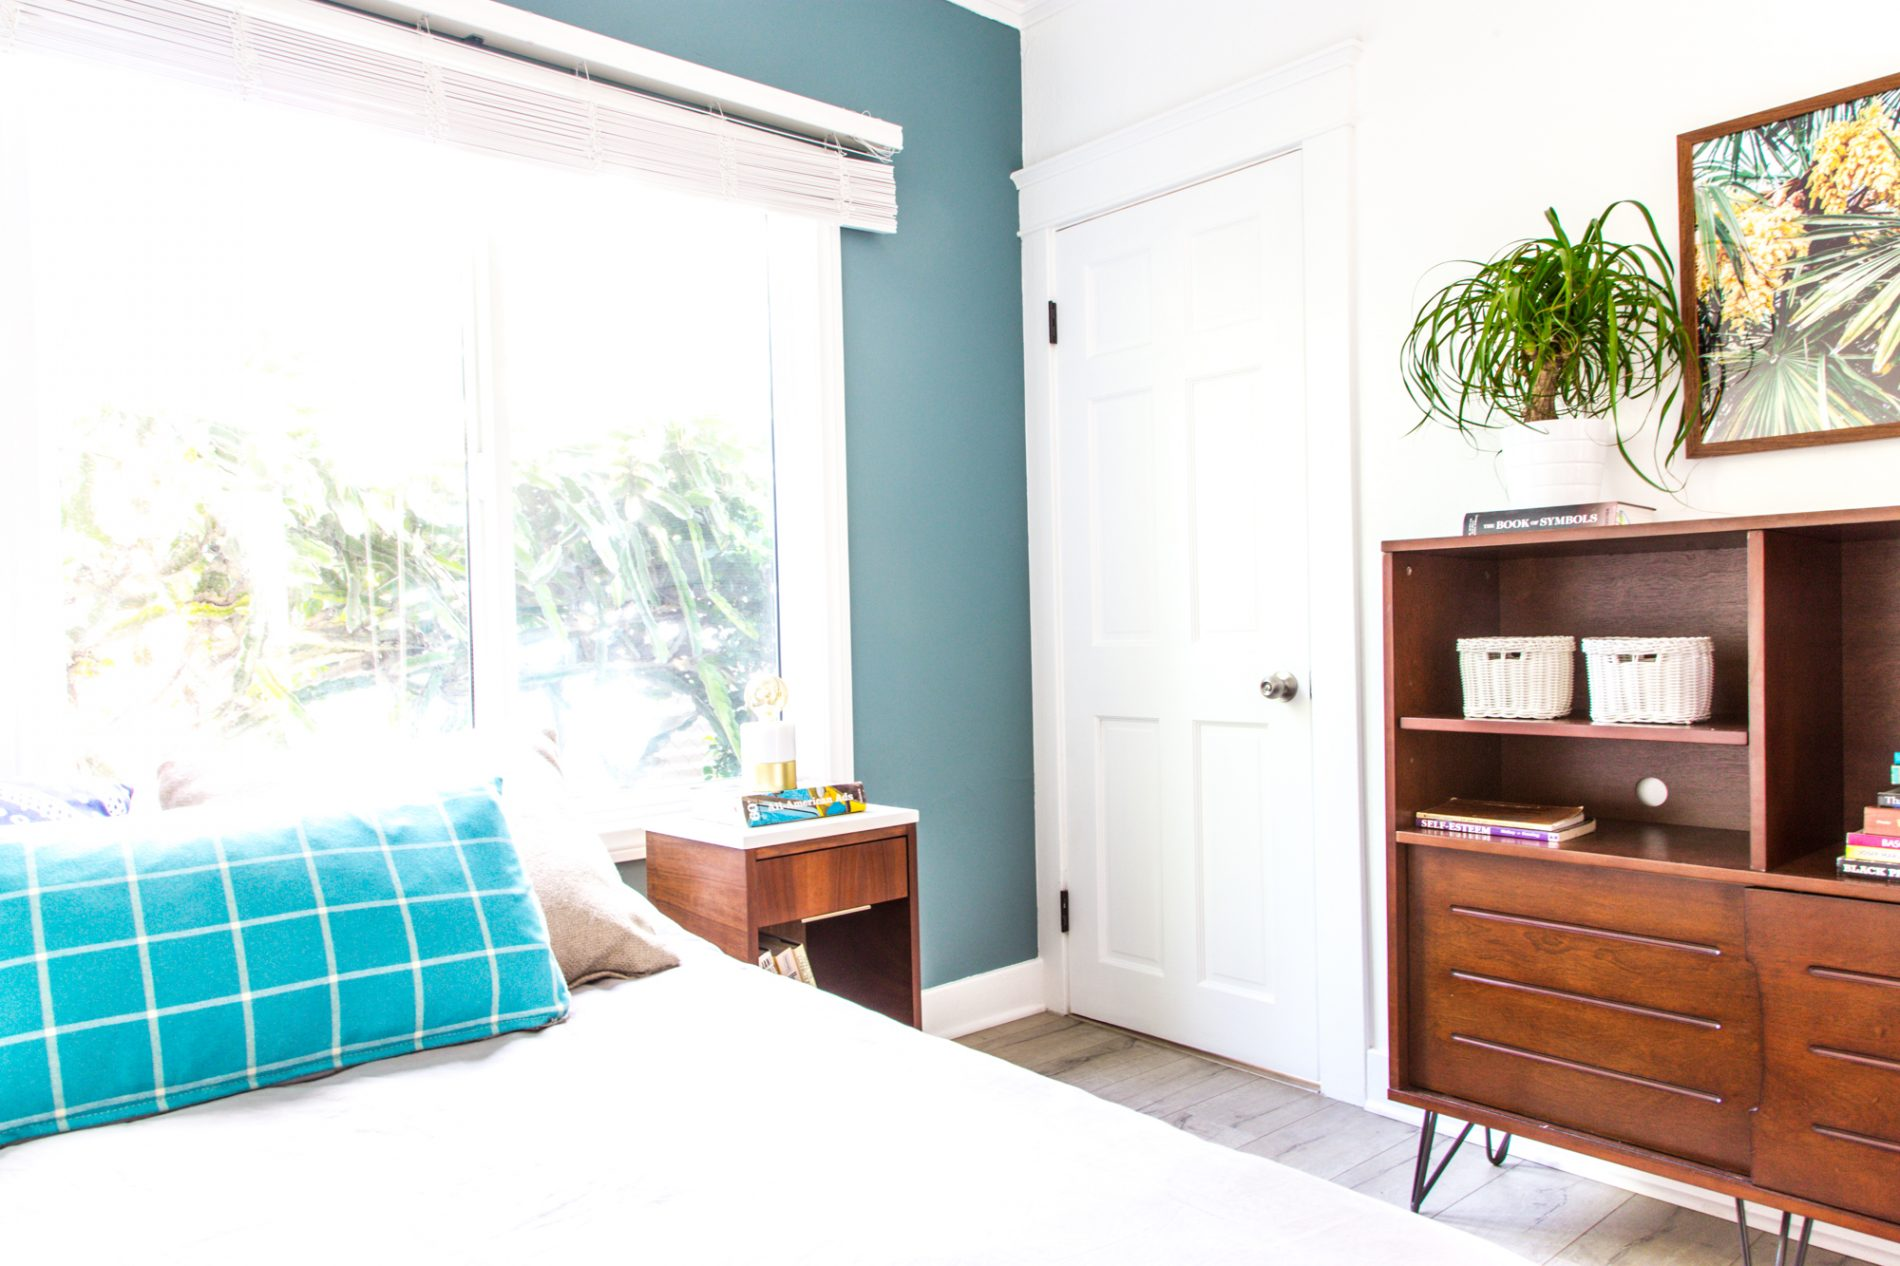 recover-integrity-sober-living-bedroom-blue